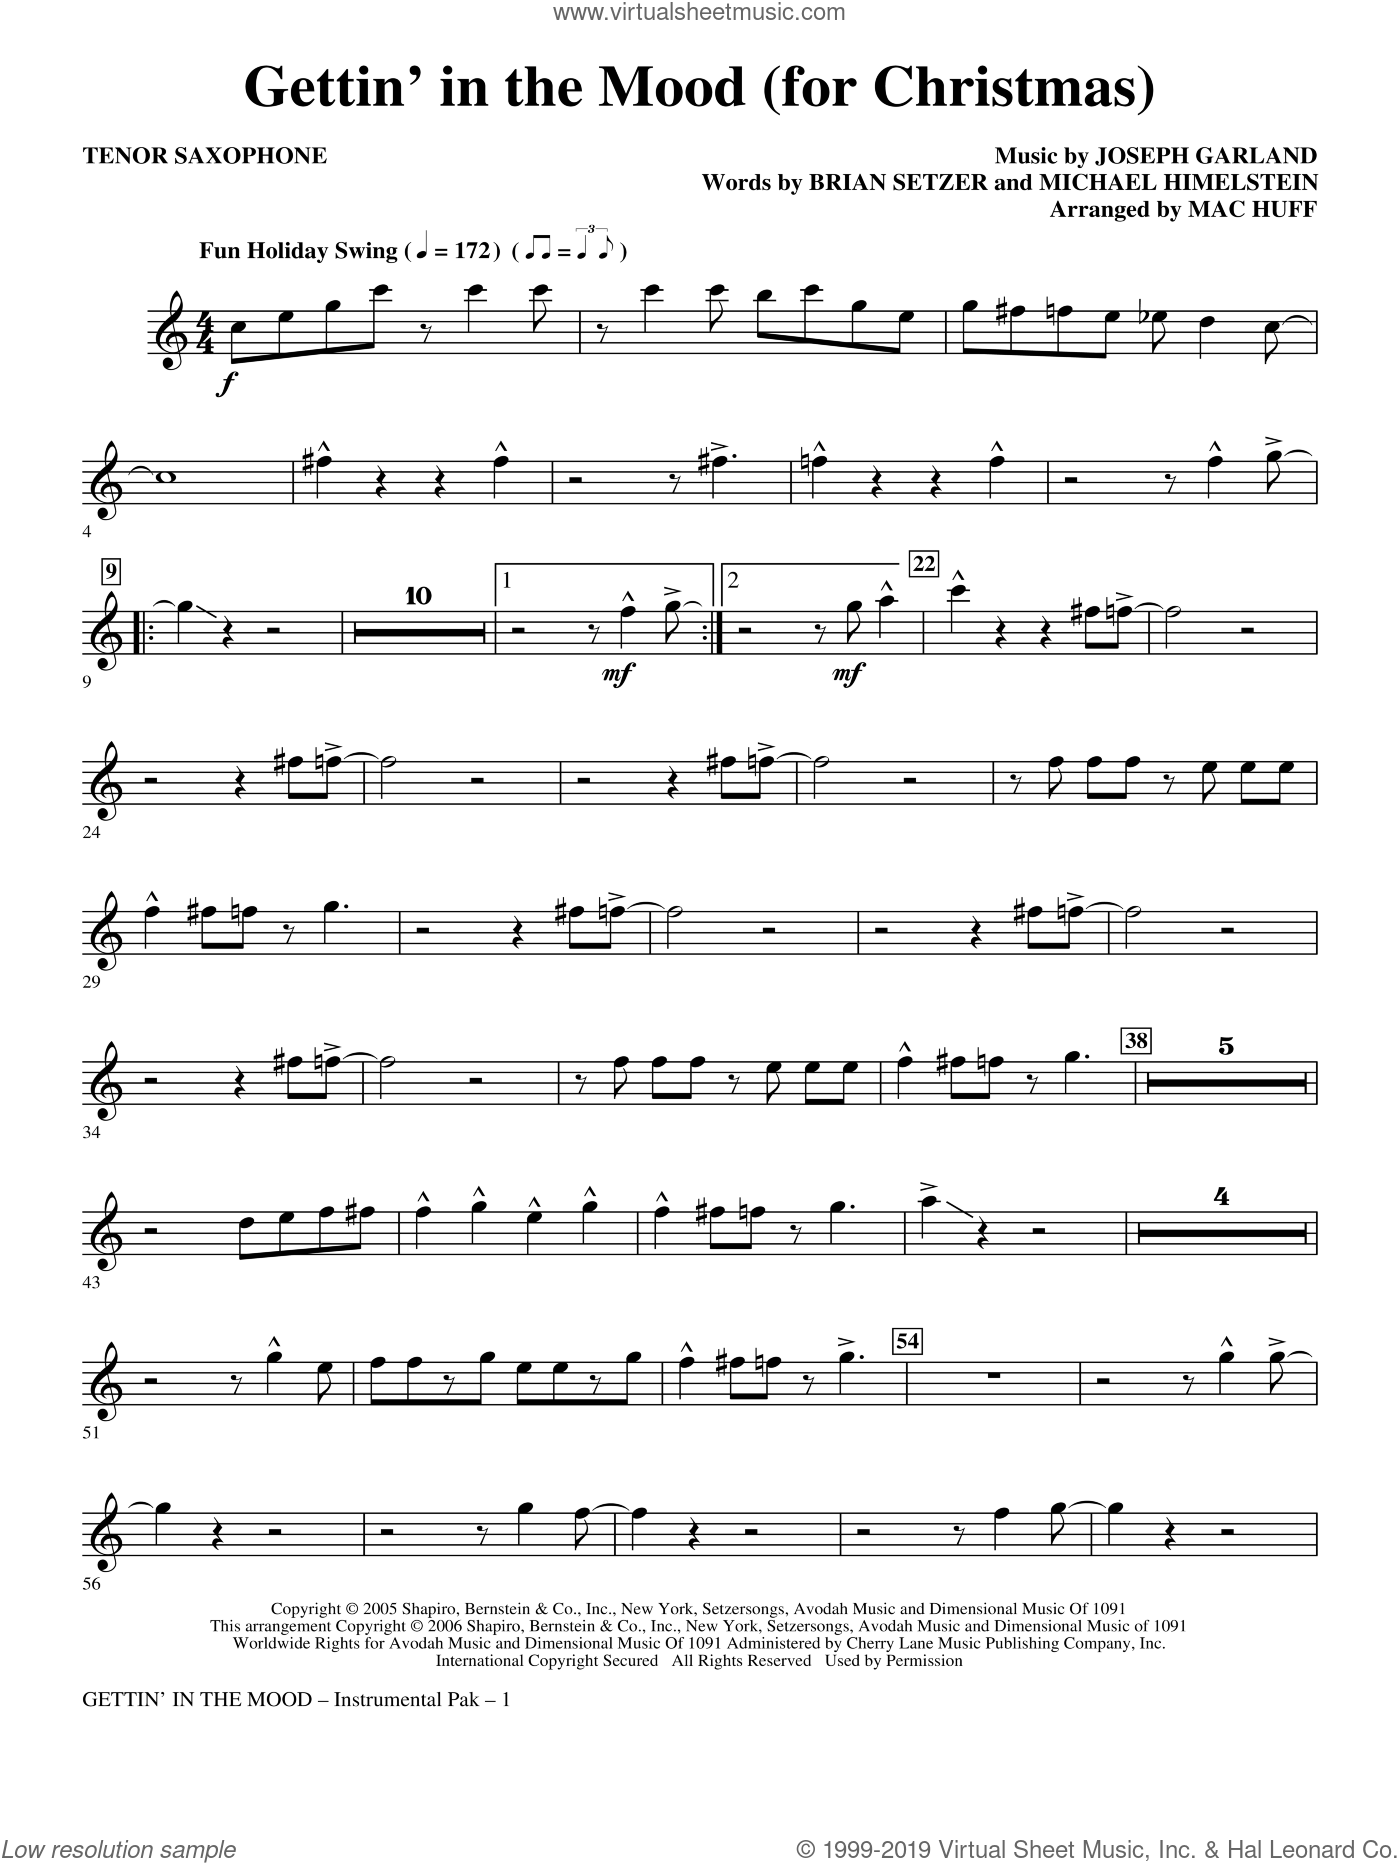 Gettin' In The Mood, for christmas sheet music for orchestra/band (tenor saxophone) by Joe Garland